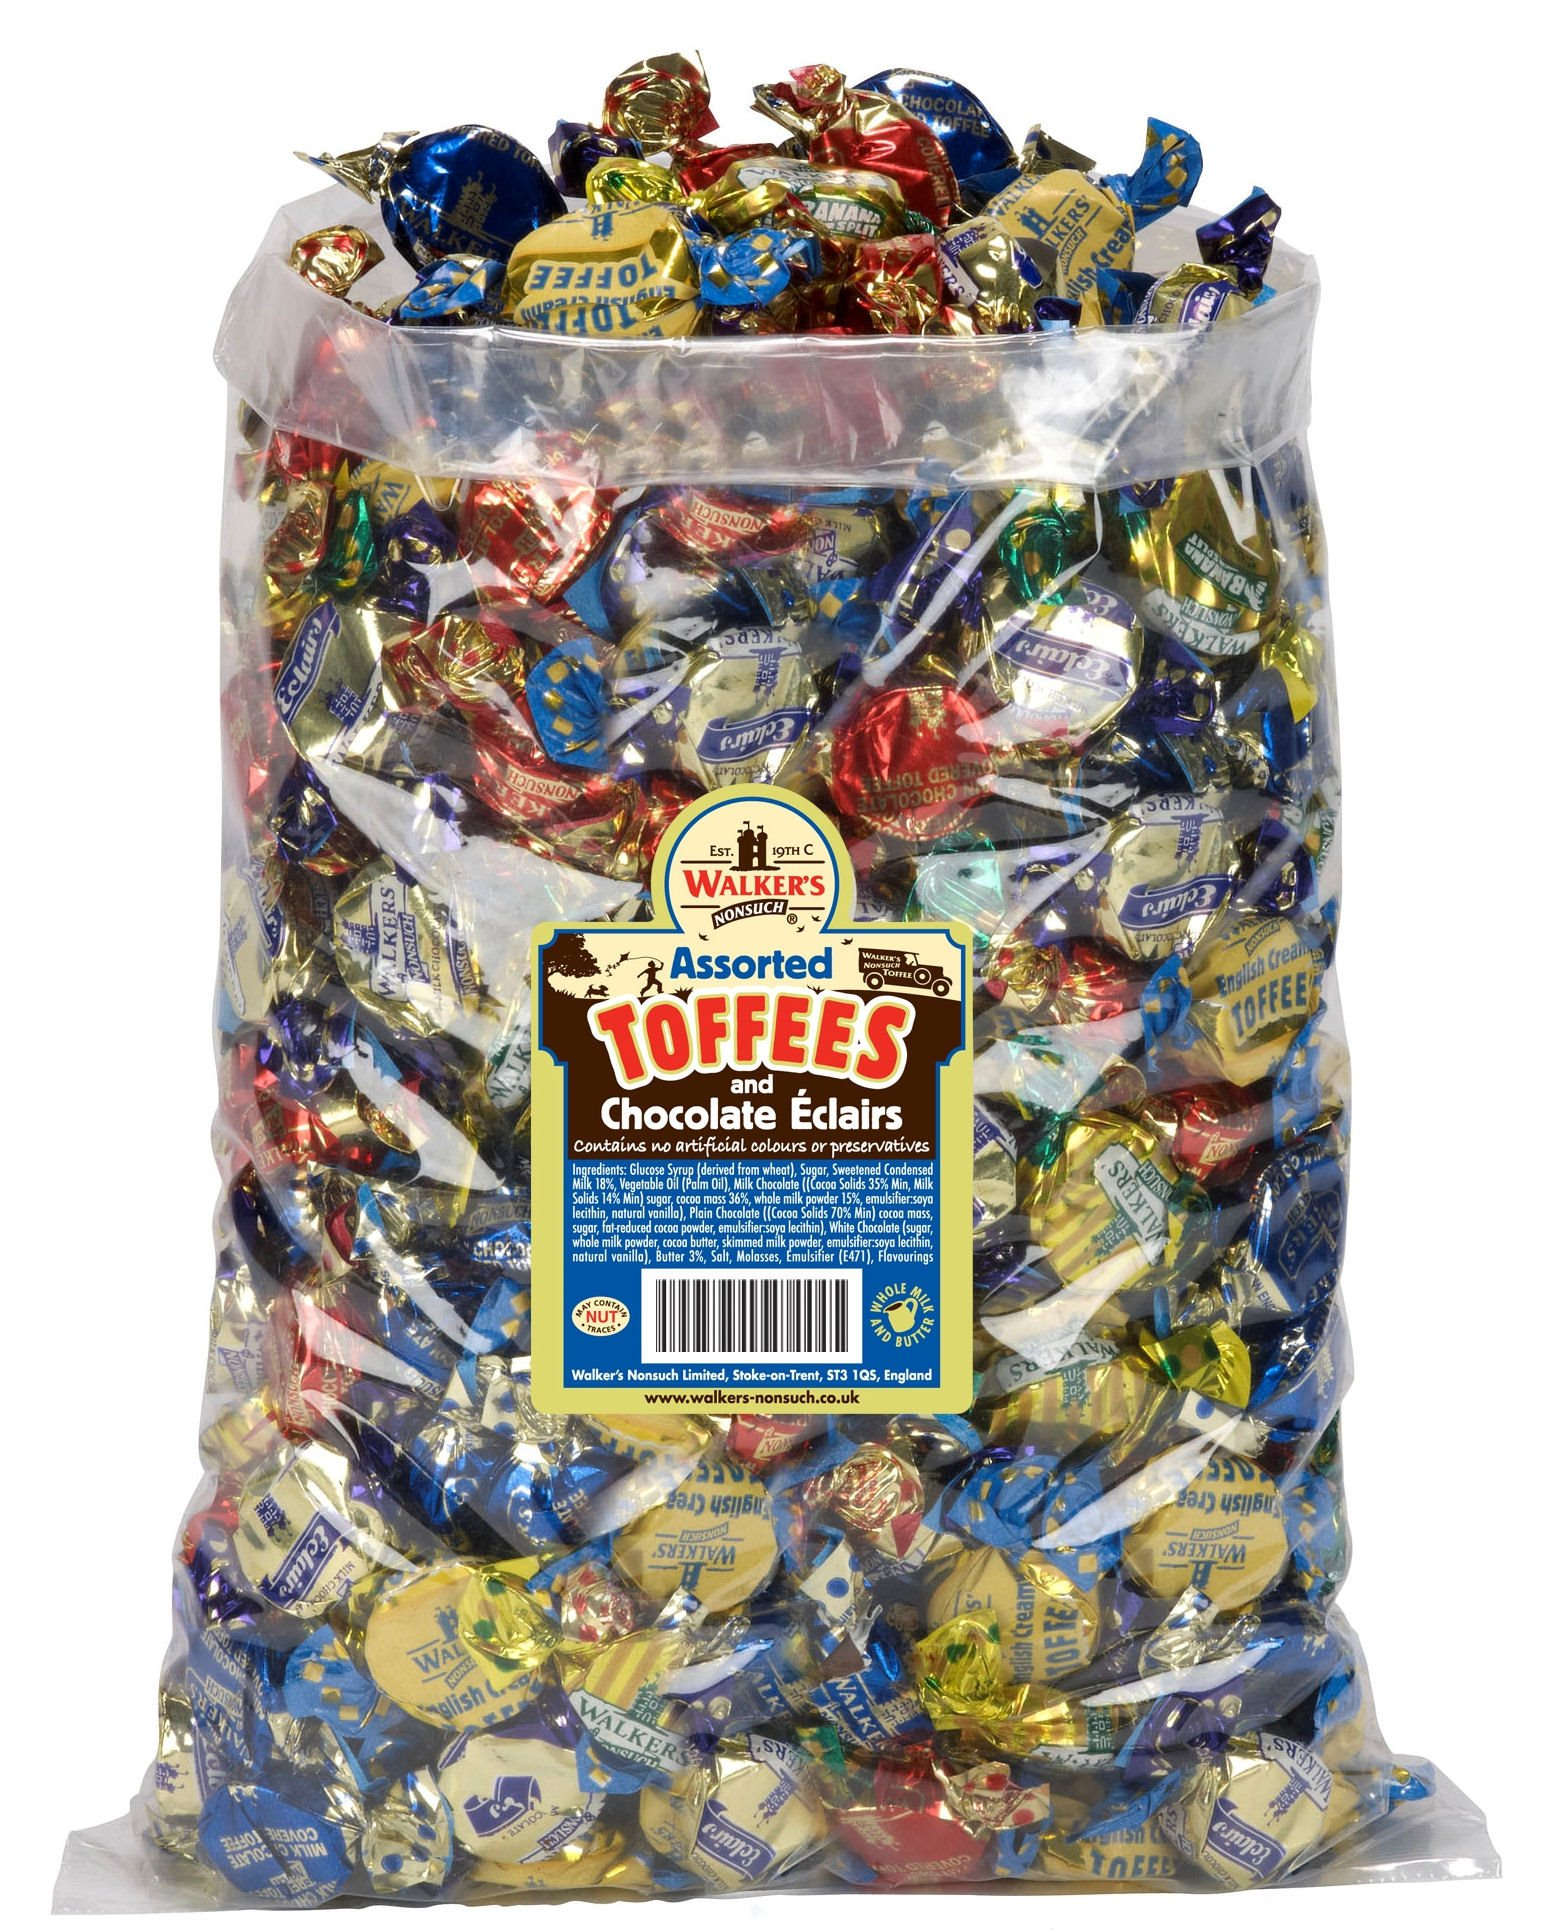 WALKERS NONSUCH Assorted Toffees and Chocolate Eclairs Bulk Bags 2.5 kg by GroceryLand